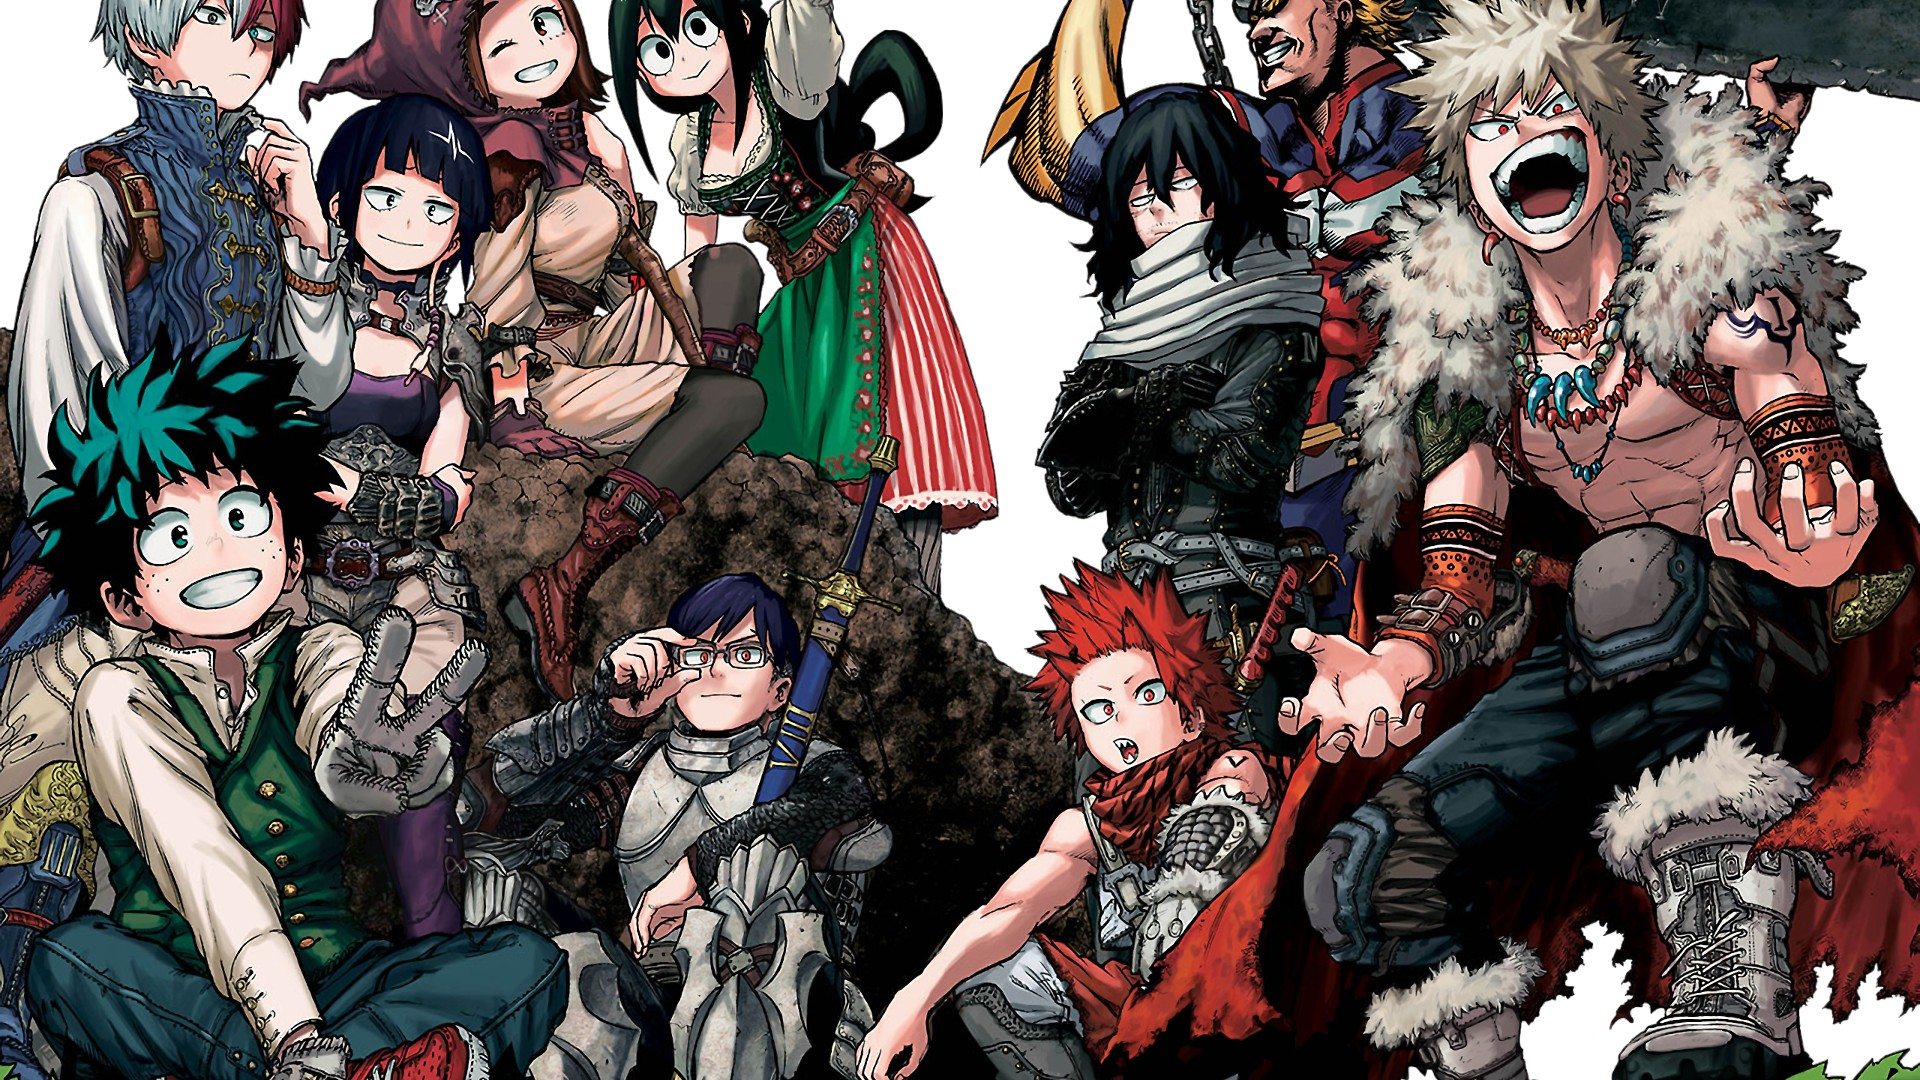 All wallpapers are in hd and. My Hero Academia Poster HD Wallpaper | 2021 Movie Poster ...